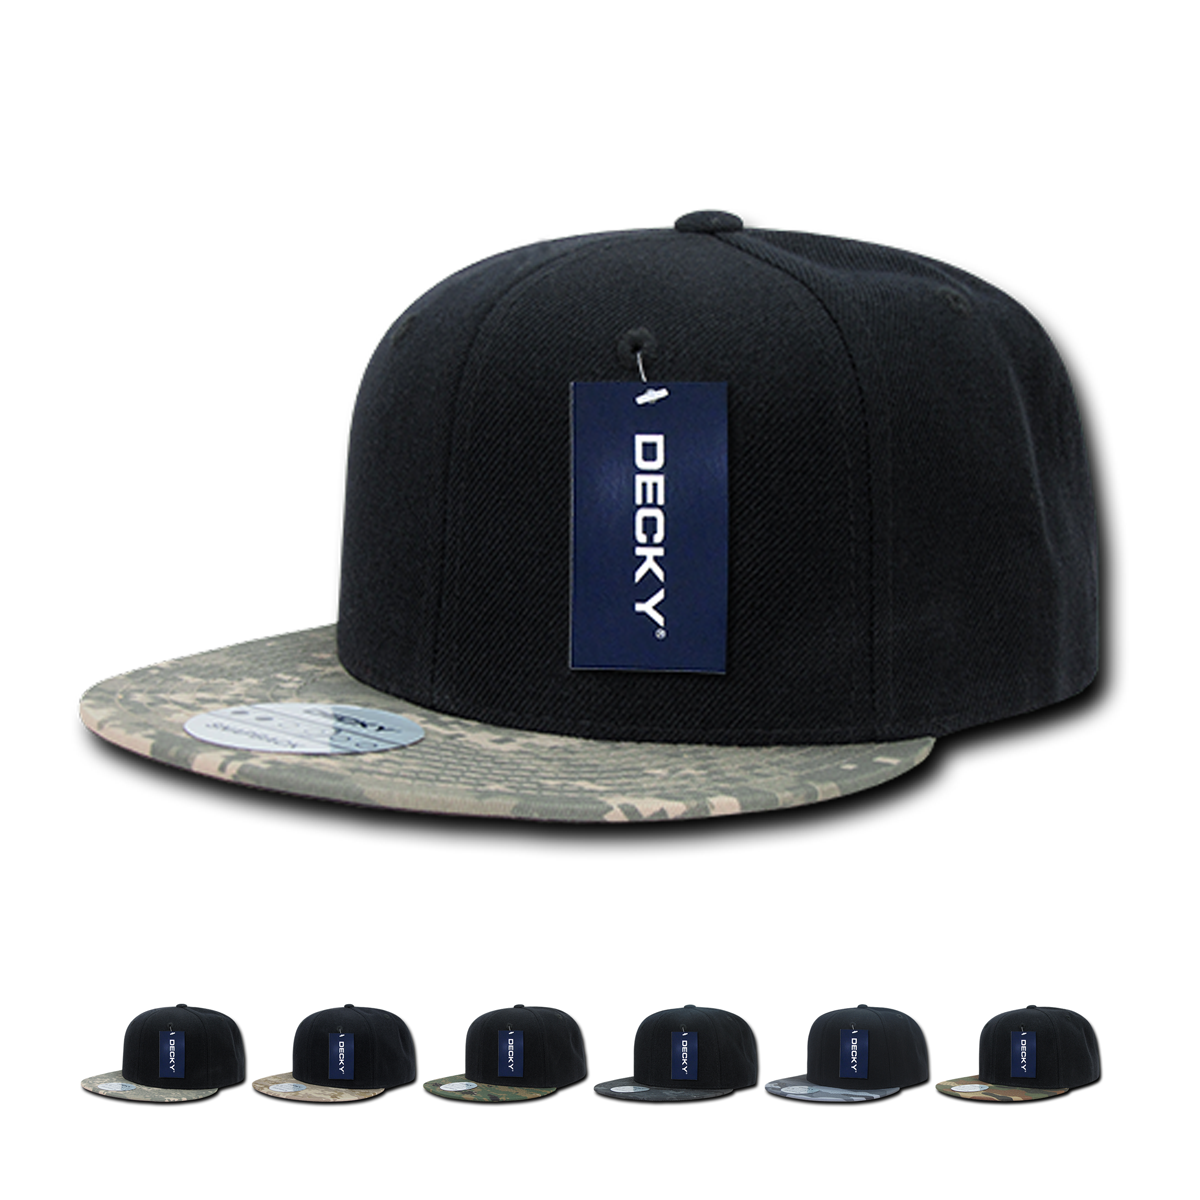 The Wholesale Camo Bill Snapback Flat Bill Hat Decky 356 Is A 6 Panel Constructed Cap Featuring Various Camouflage Designs On A With Images Flat Bill Hats Snapback Hats